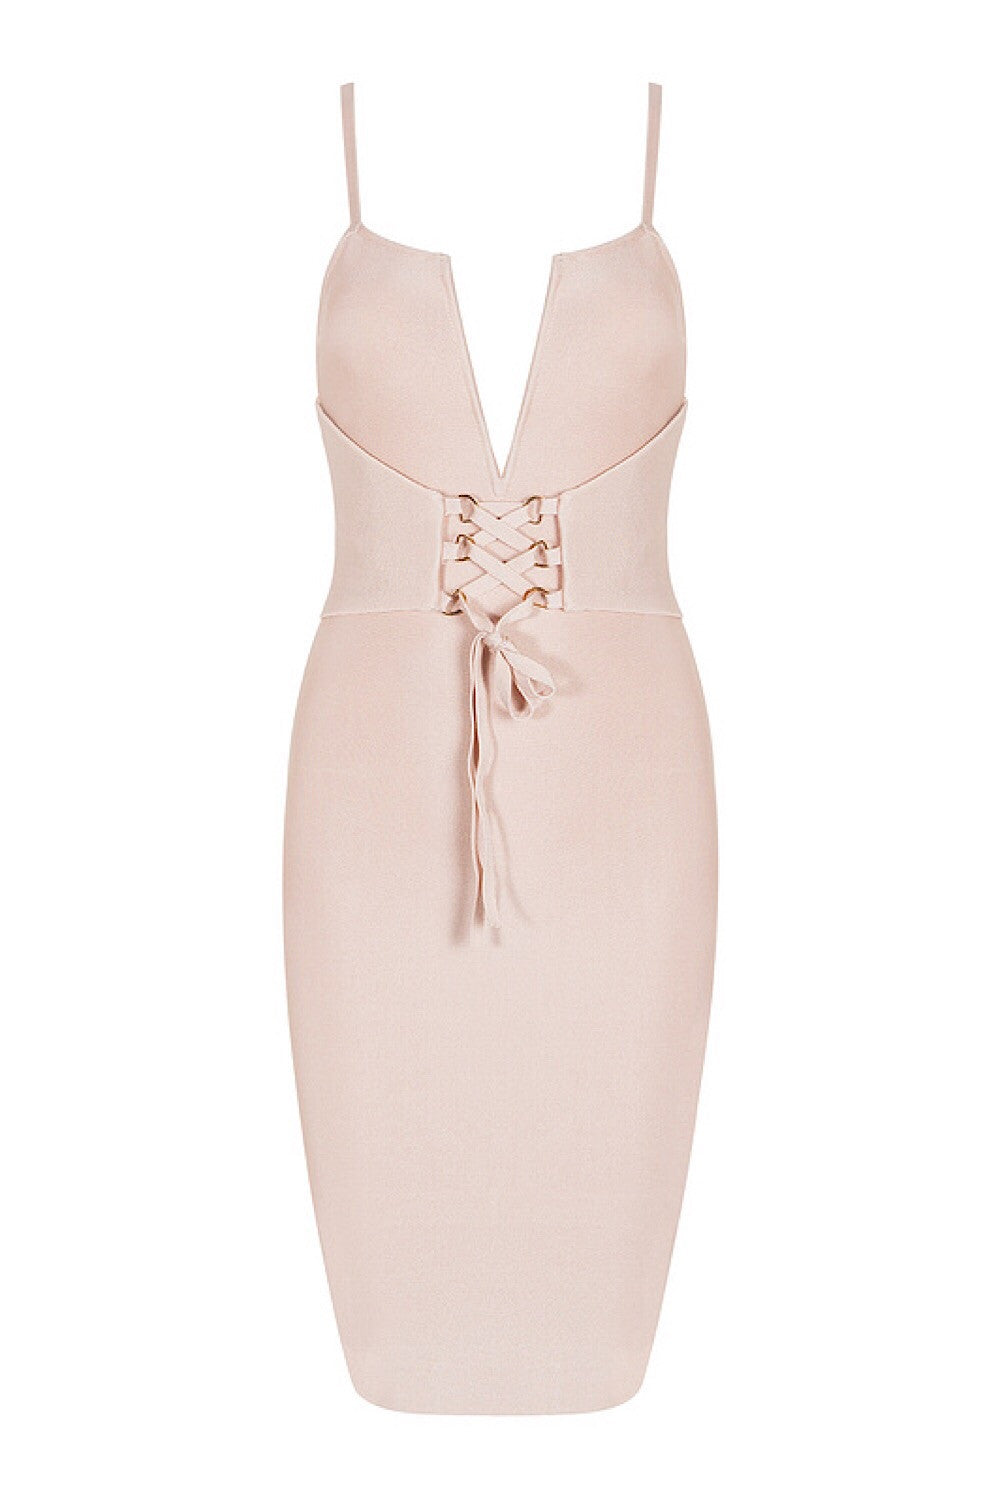 Sue Pink Tie Up Bandage Dress